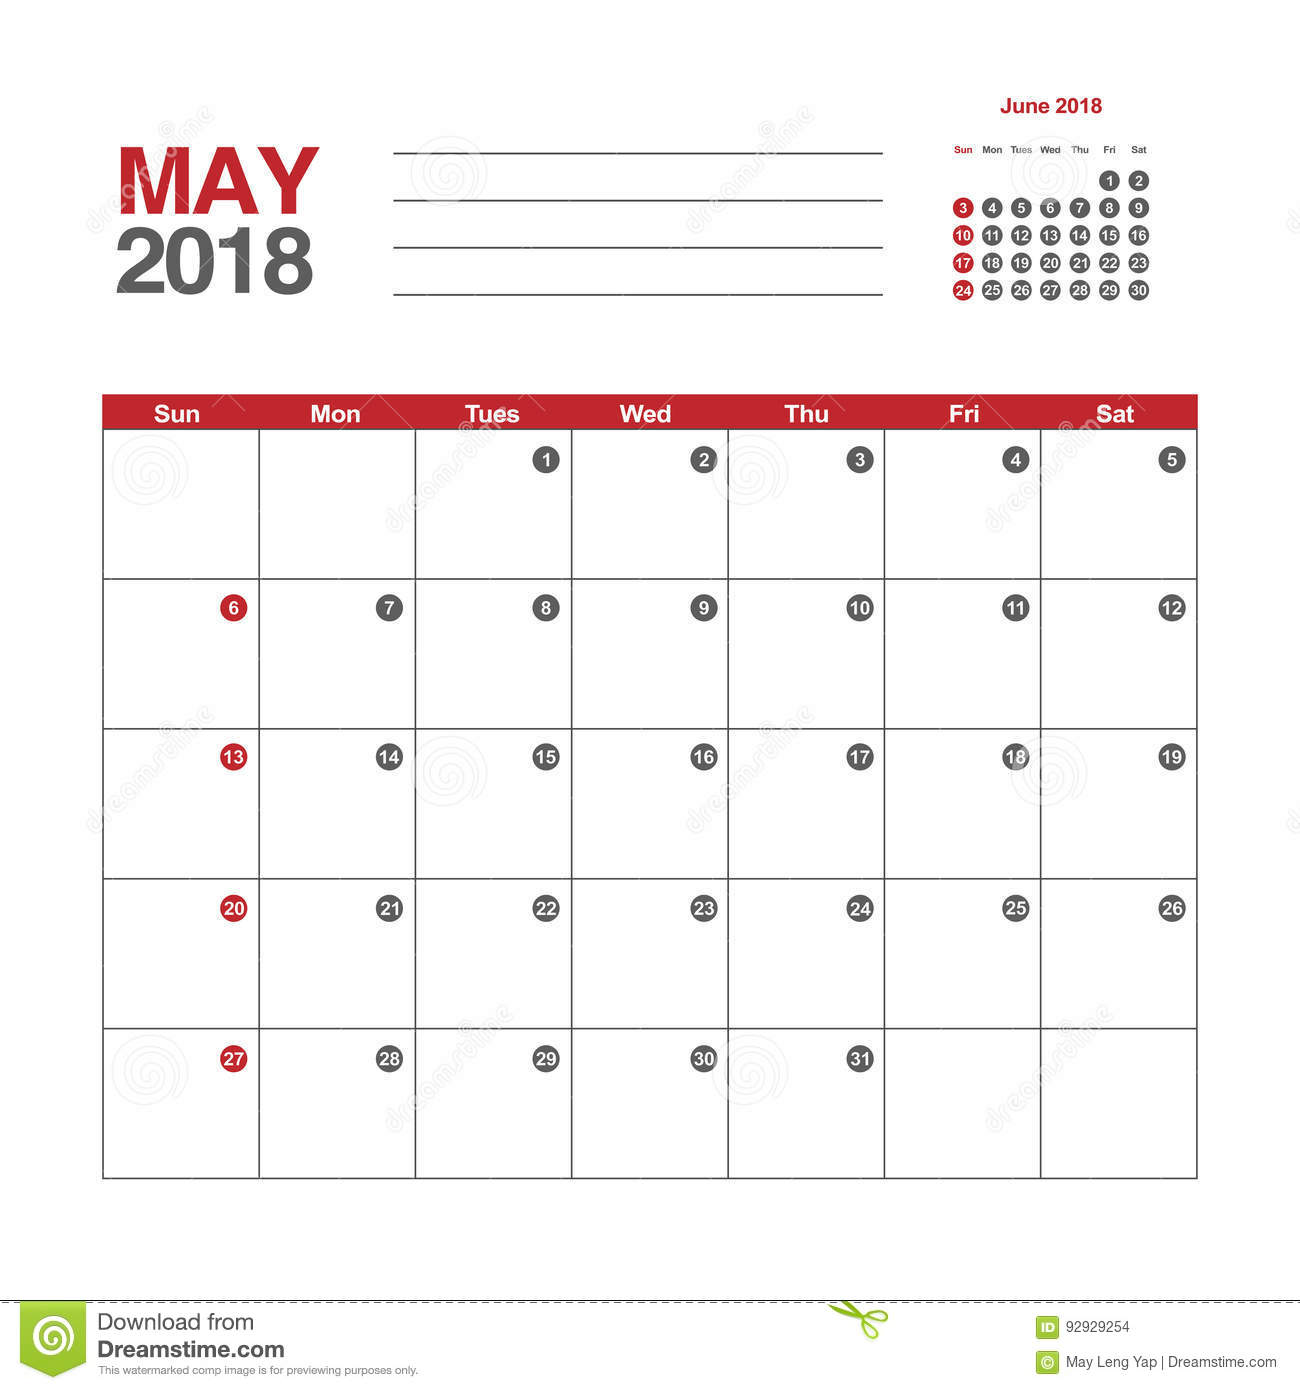 May 2018 Calendar South Africa with Notes